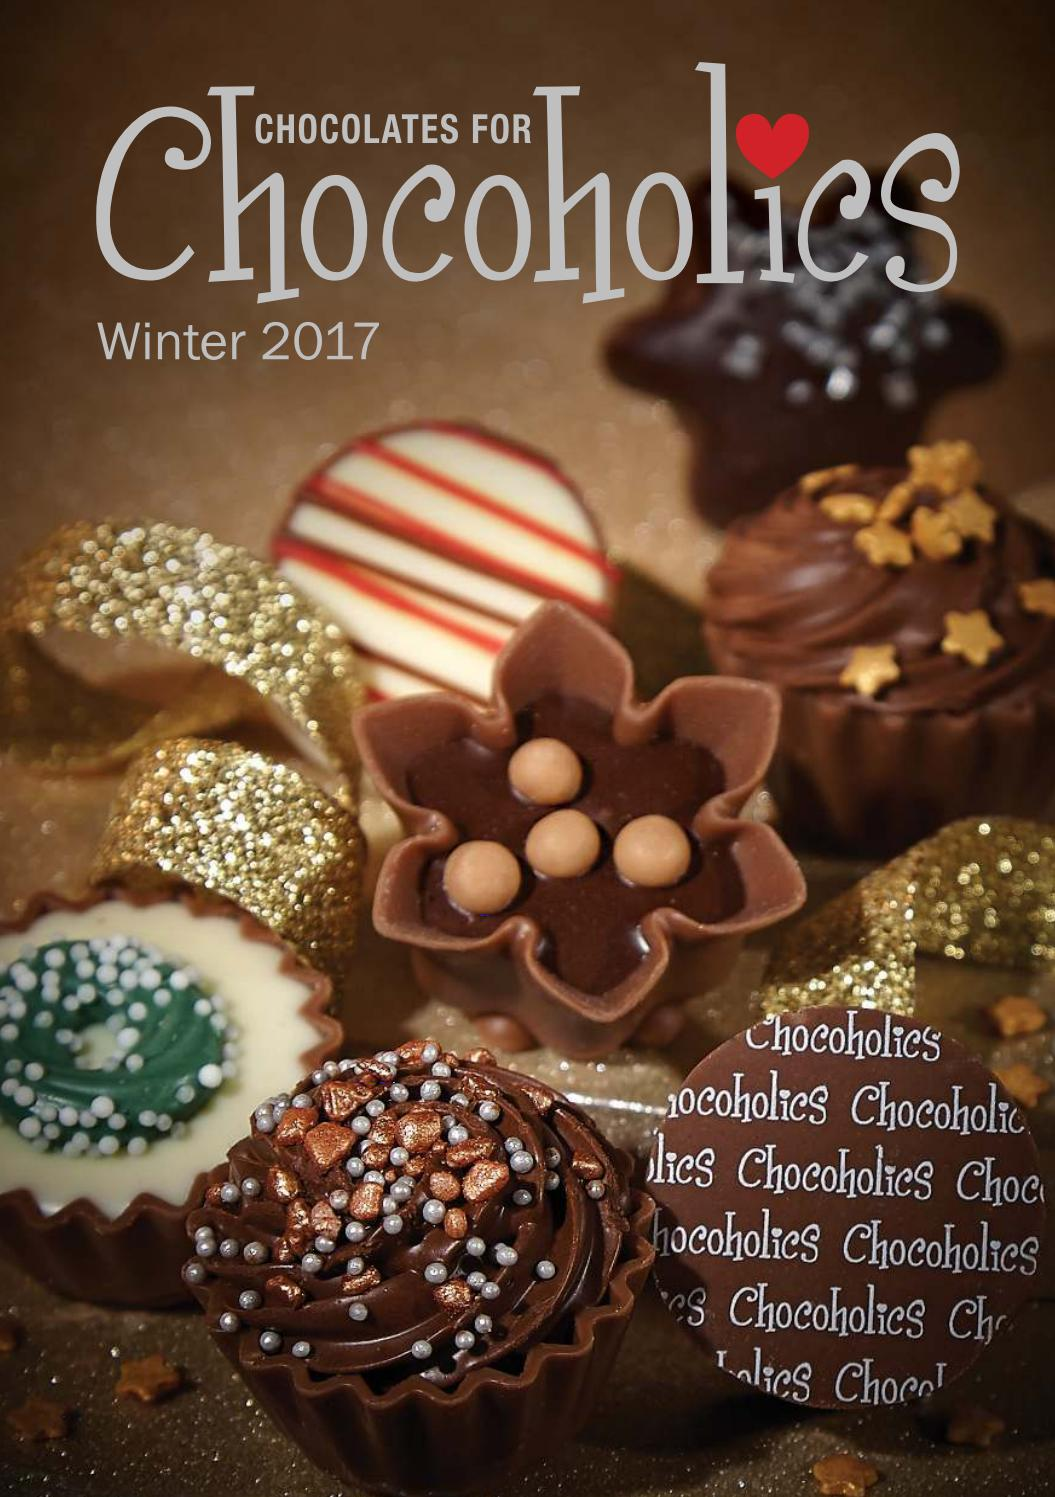 Chocolates For Chocoholics Winter 2017 Brochure By